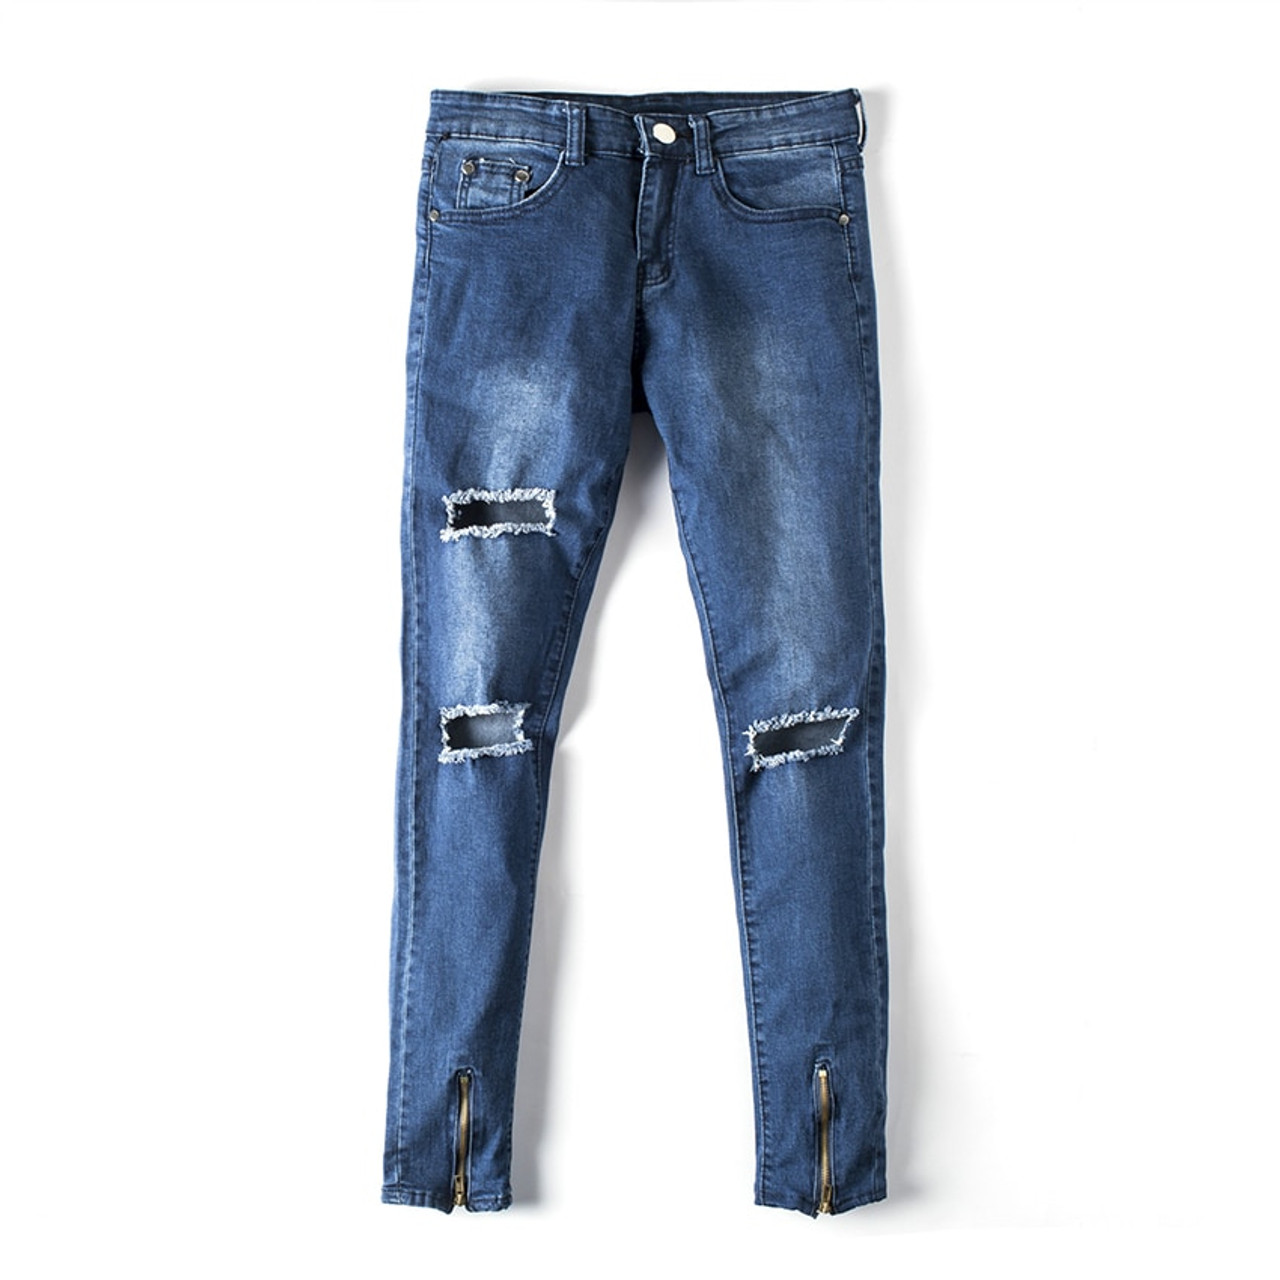 9b1e93a919dc ... Newest Men Hip Hop Zipper Ripped Biker Jeans Fashion Slim Fit  Motorcycle Jeans Men Distressed Biker ...